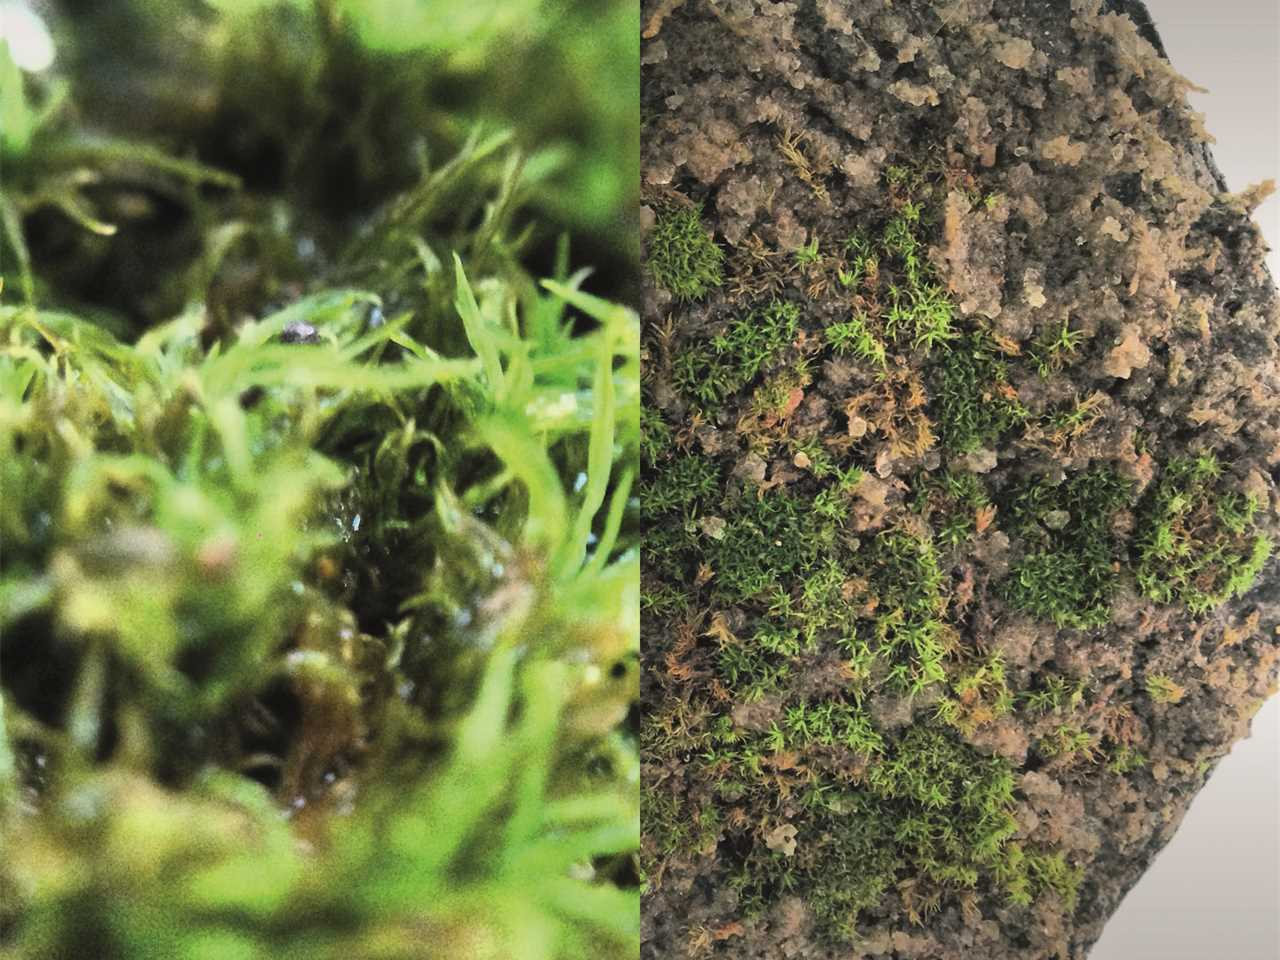 Project entry 2014 Europe – Bio Ceramic: Moss-grafted clay tiles for green roofs, Barcelona, Spain